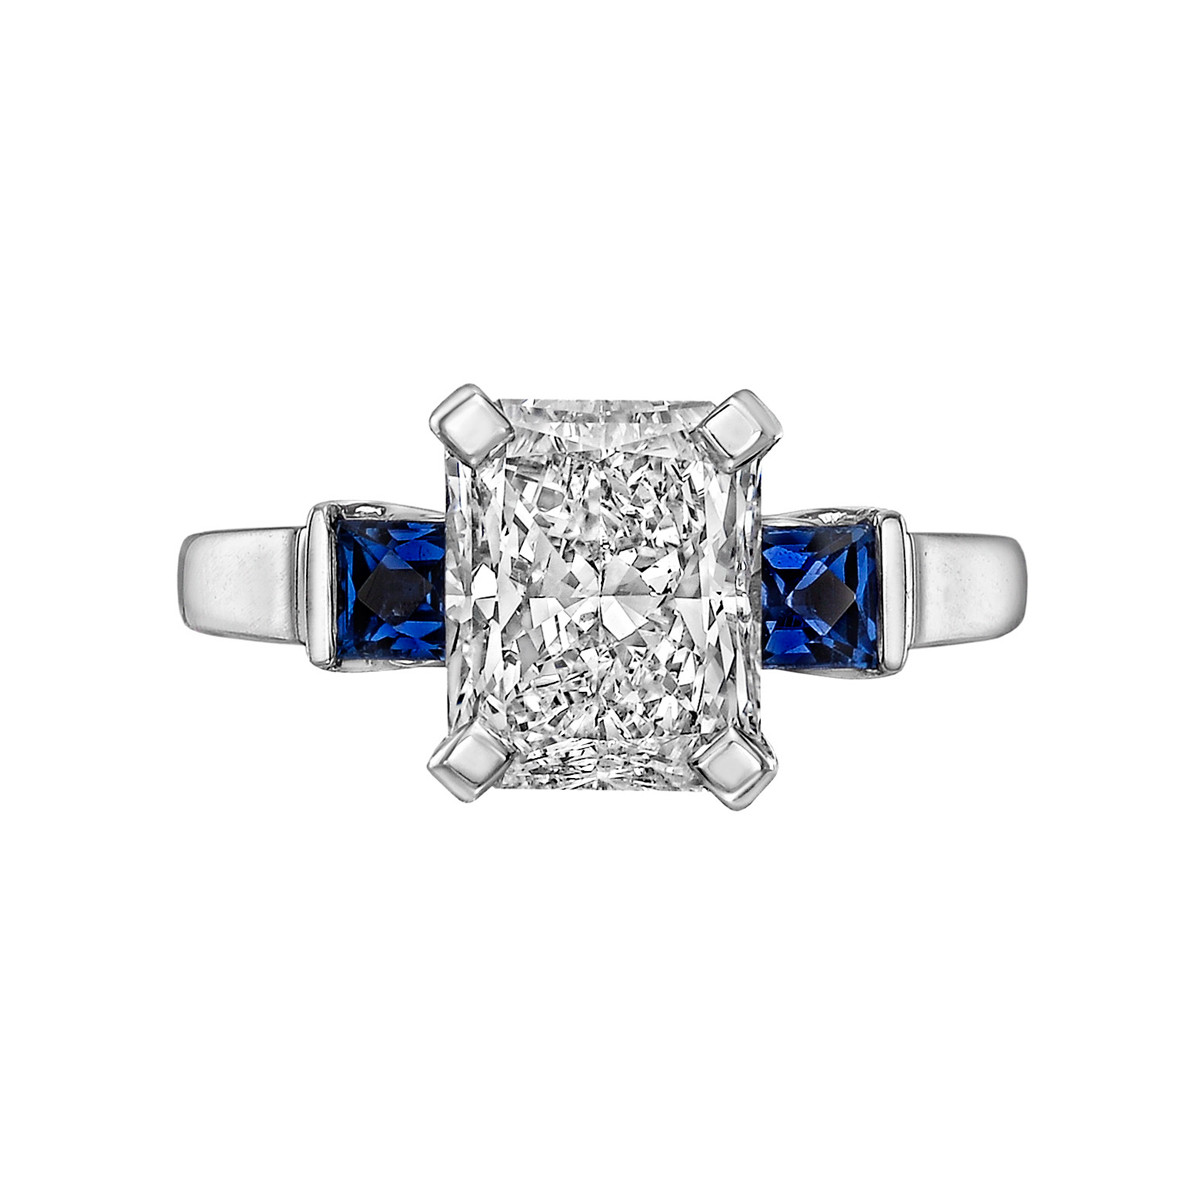 3.00ct Radiant-Cut Diamond Ring (D/VS2)